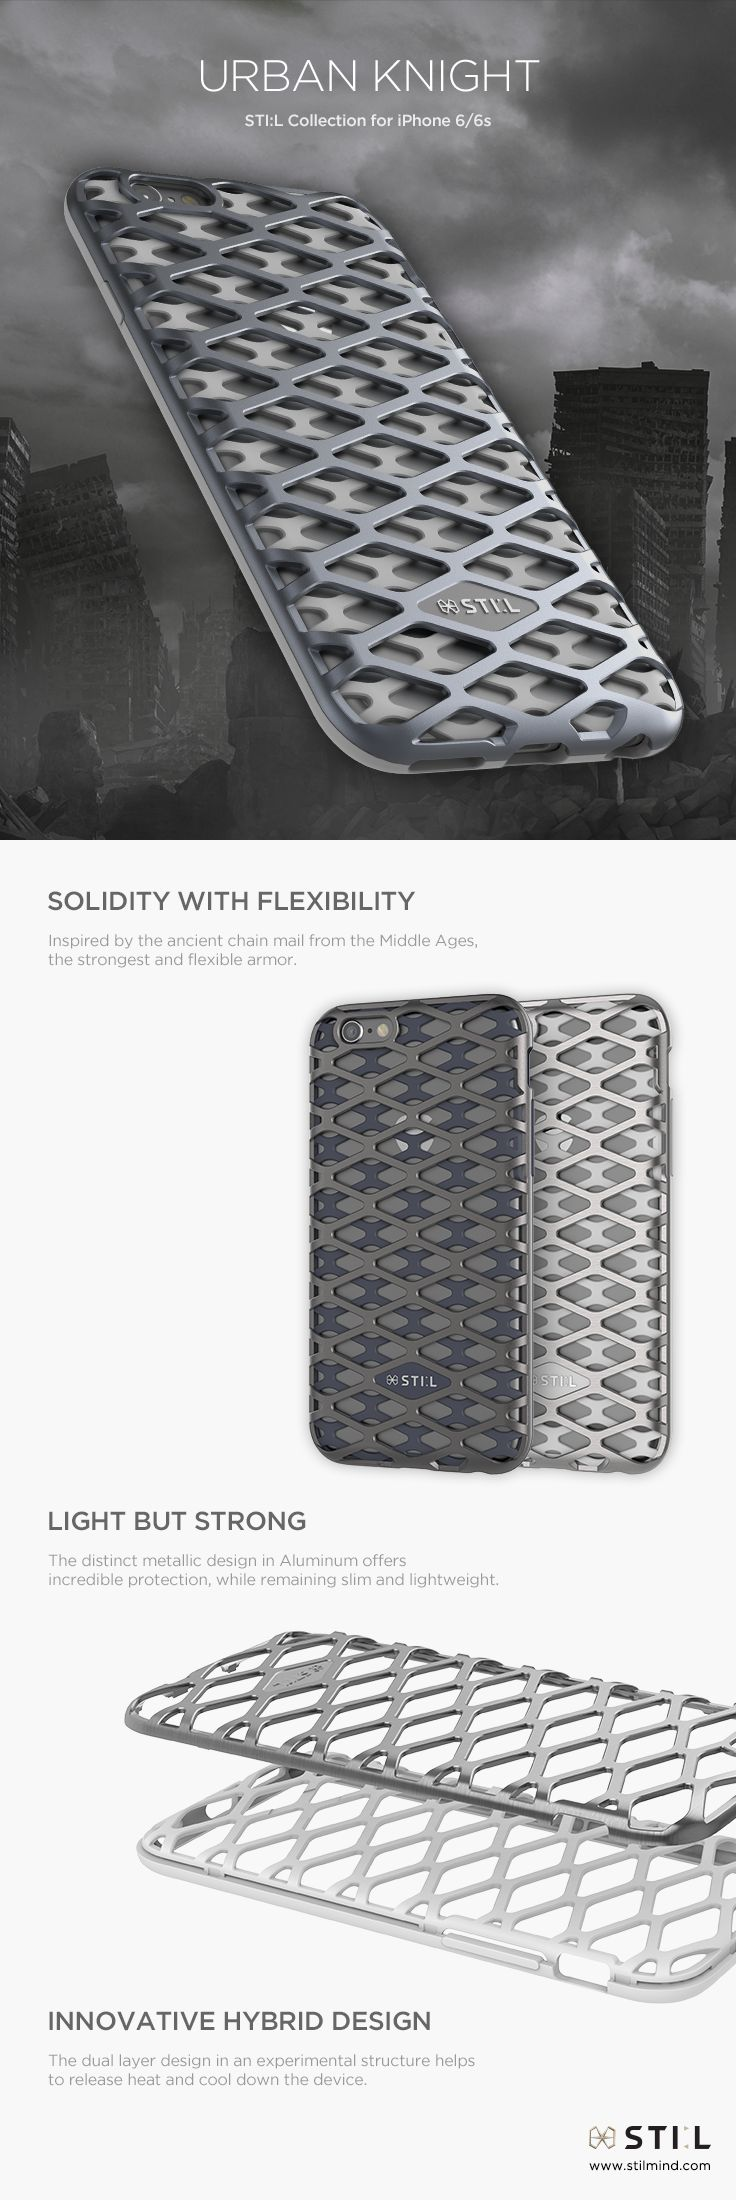 13 Best Iphone 8 Plus Cases Images On Pinterest I Phone Goospery Hybrid Dream Bumper Case Jet Black Urban Knight The Chain Mail In Middle Ages Strongest And Flexible